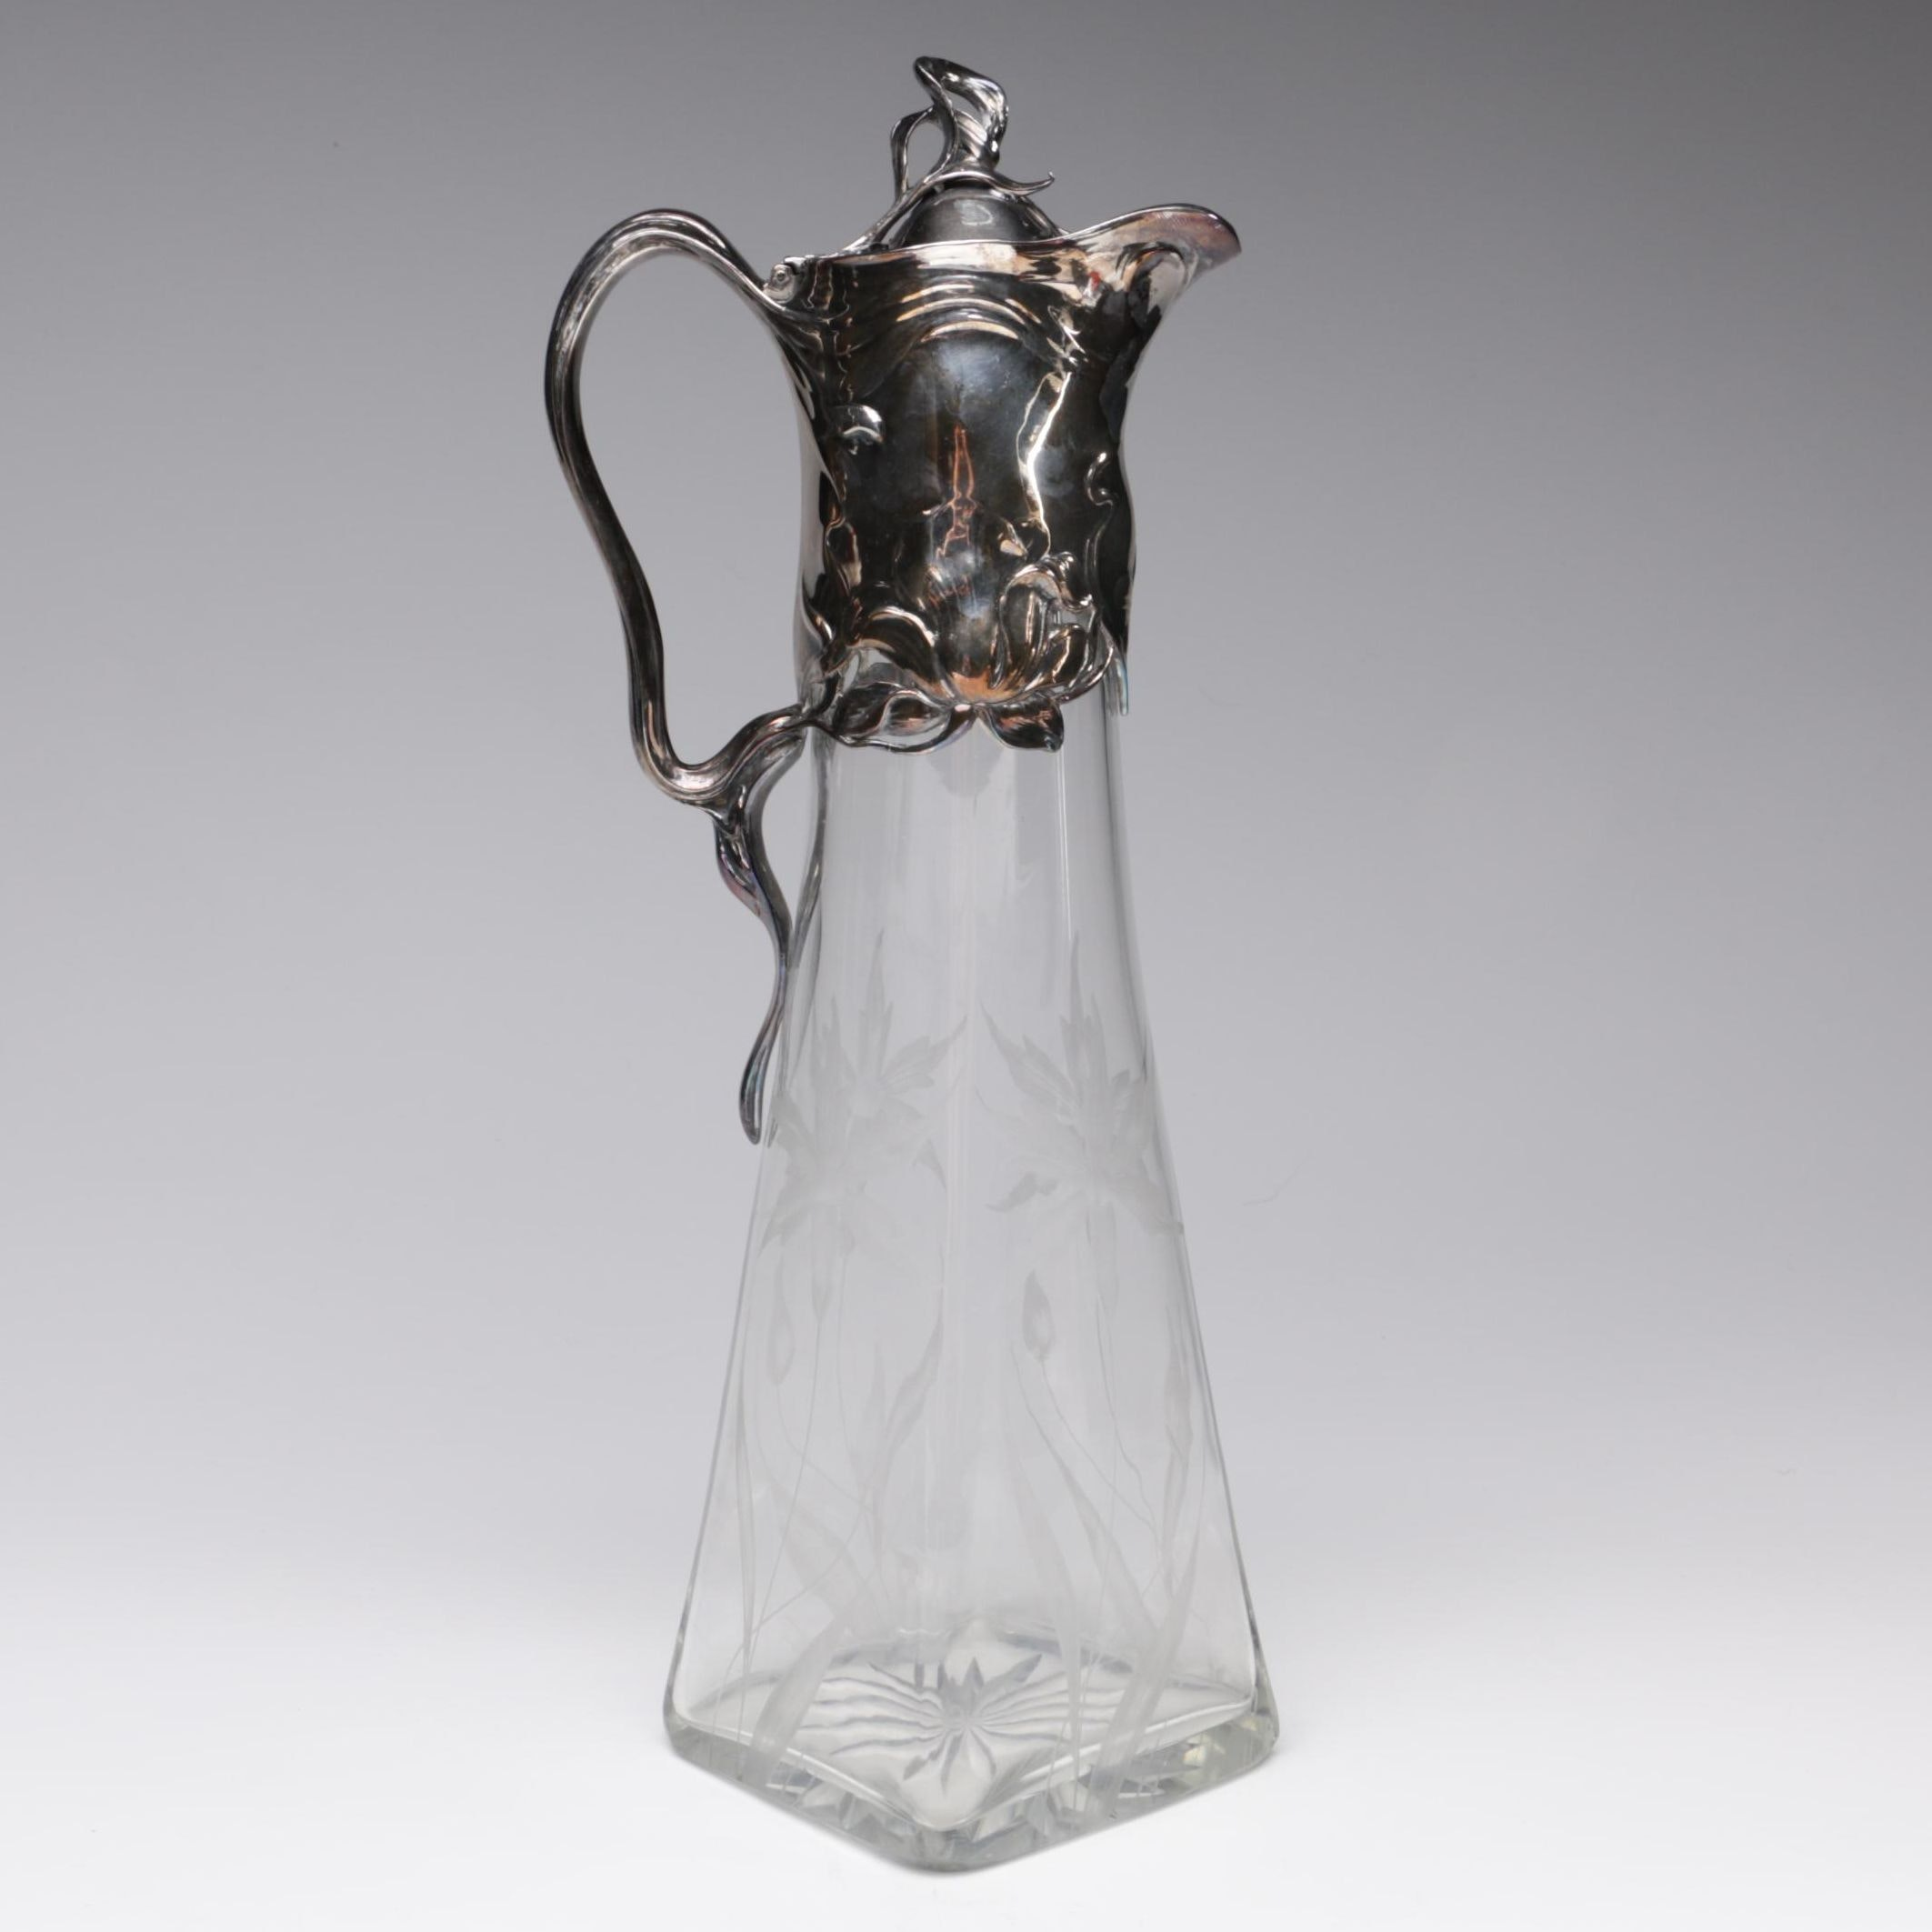 Art Nouveau Silver Plate and Etched Glass Claret Jug, Early 20th Century